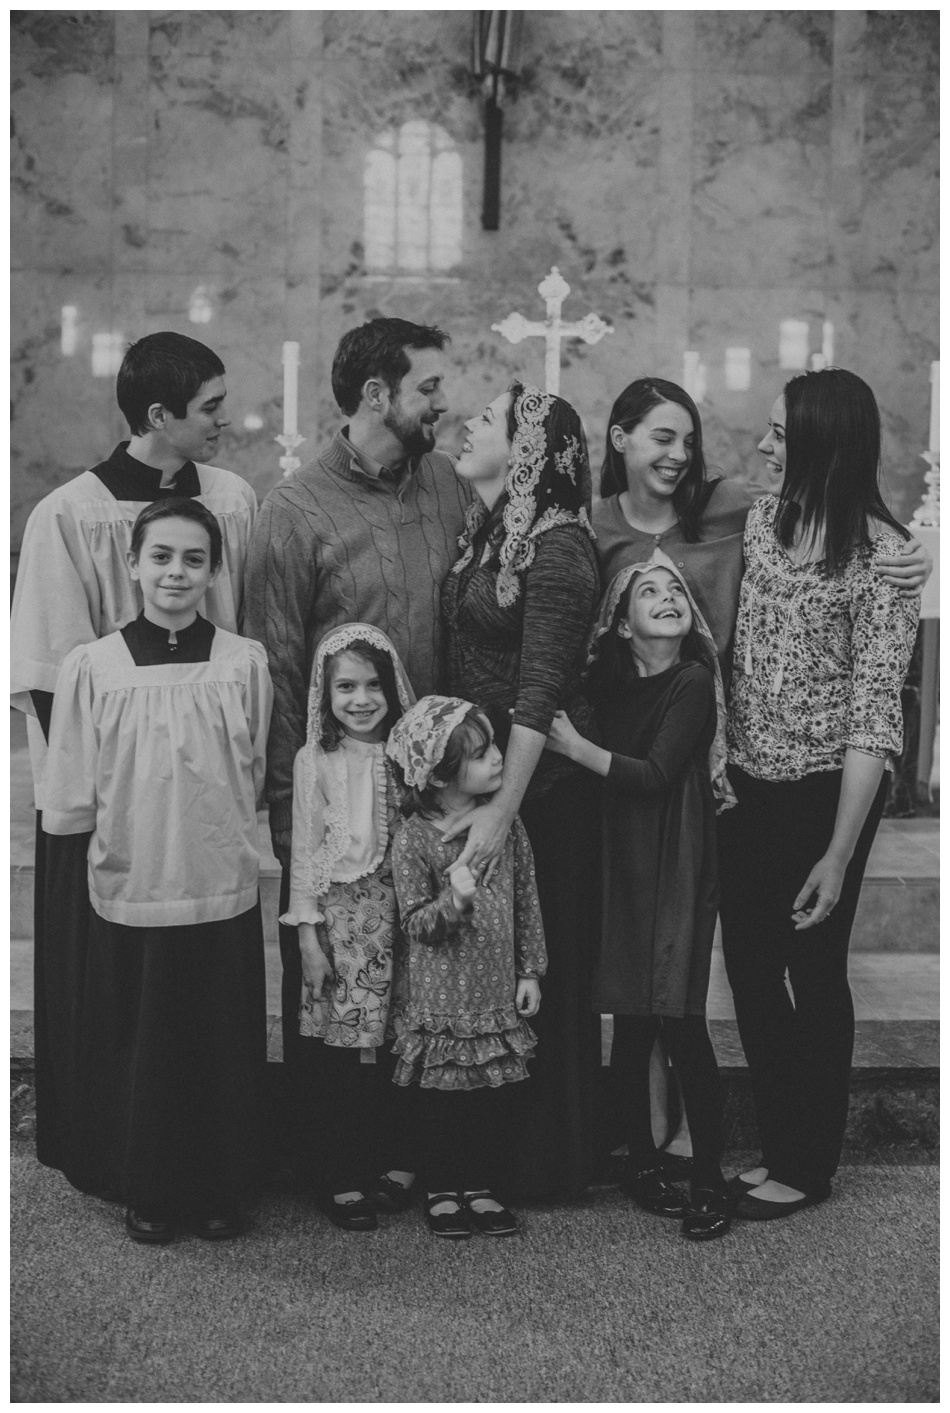 Catholic Family Laughing at Mass